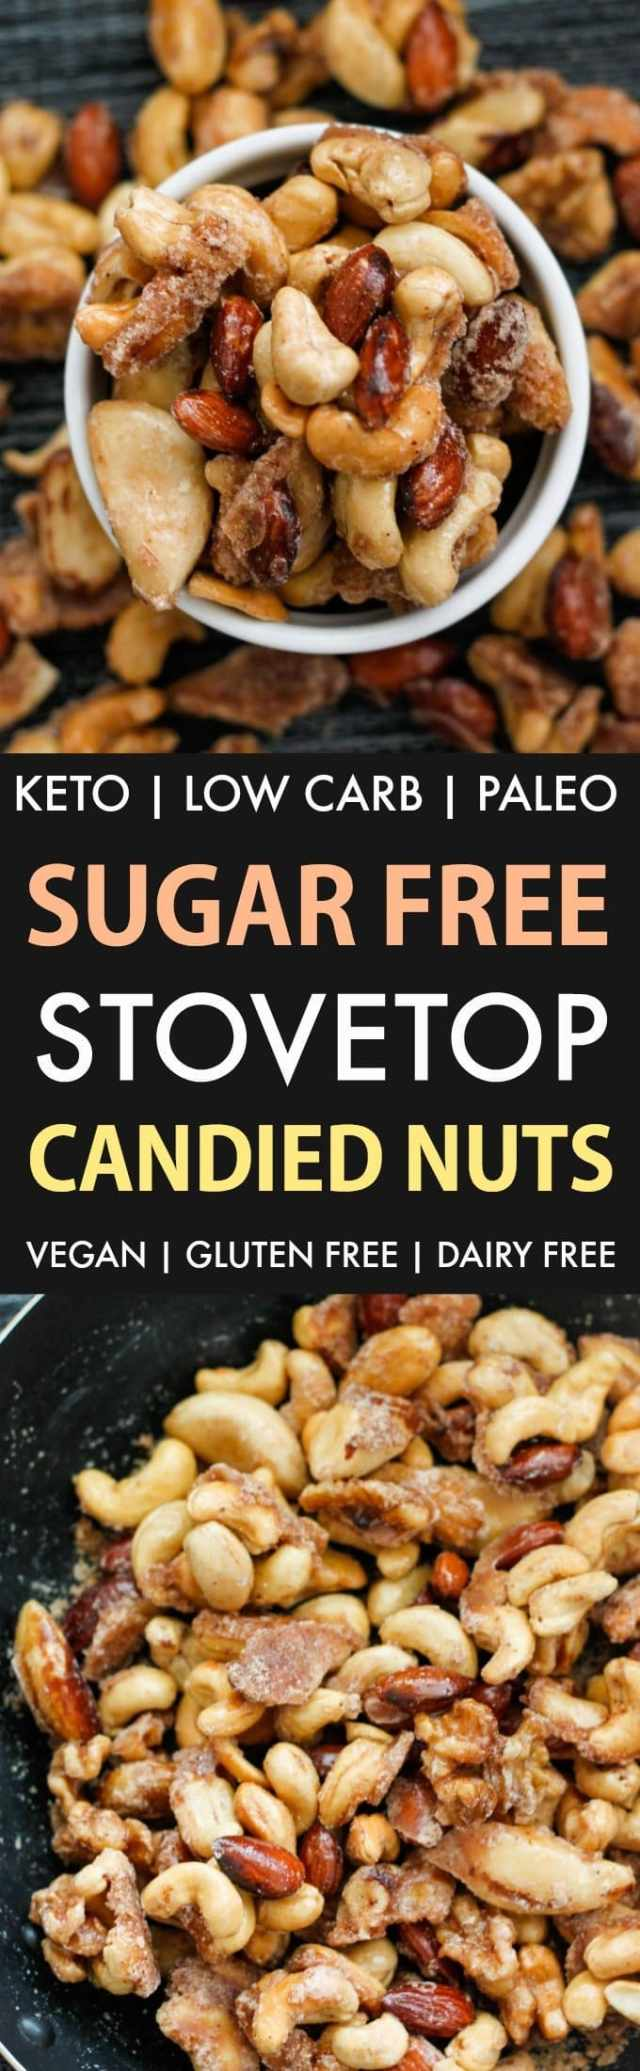 Sugar-Free Stovetop Candied Nuts (Keto, Low Carb, Paleo)- Stovetop made candied nuts made with zero sugar or oil- Perfect for holidays, gifts and every day guilt-free snacking! {vegan, gluten free, dairy free recipe}- #nuts #sugarfree #lowcarb #ketodessert | Recipe on thebigmansworld.com